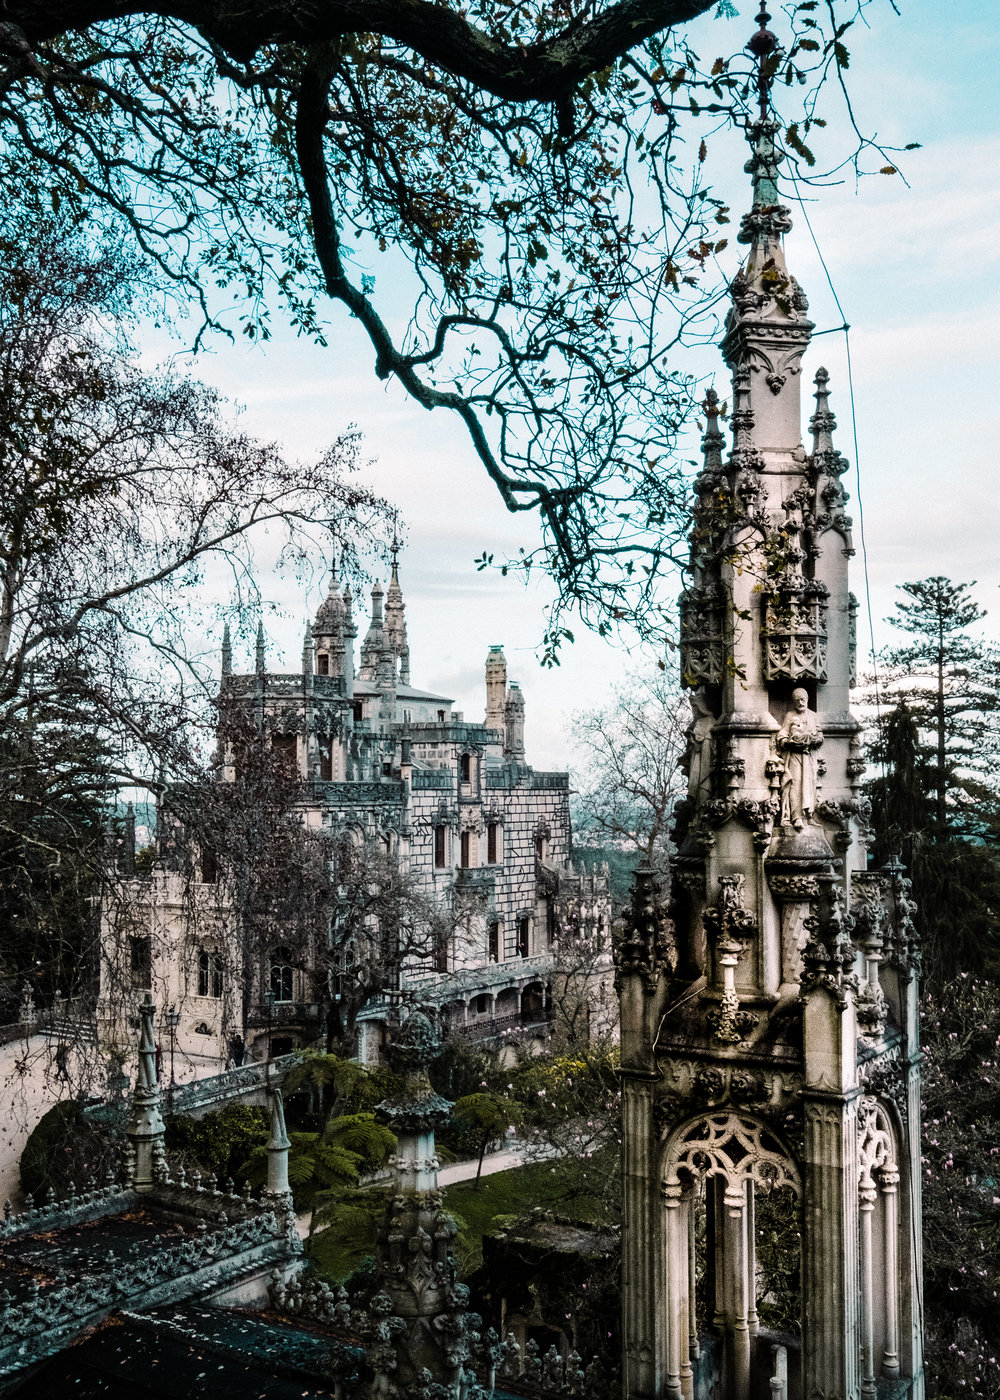 QuintadaRegaleira_Sintra_Portugal_JuliaMattis_Photo14.jpg